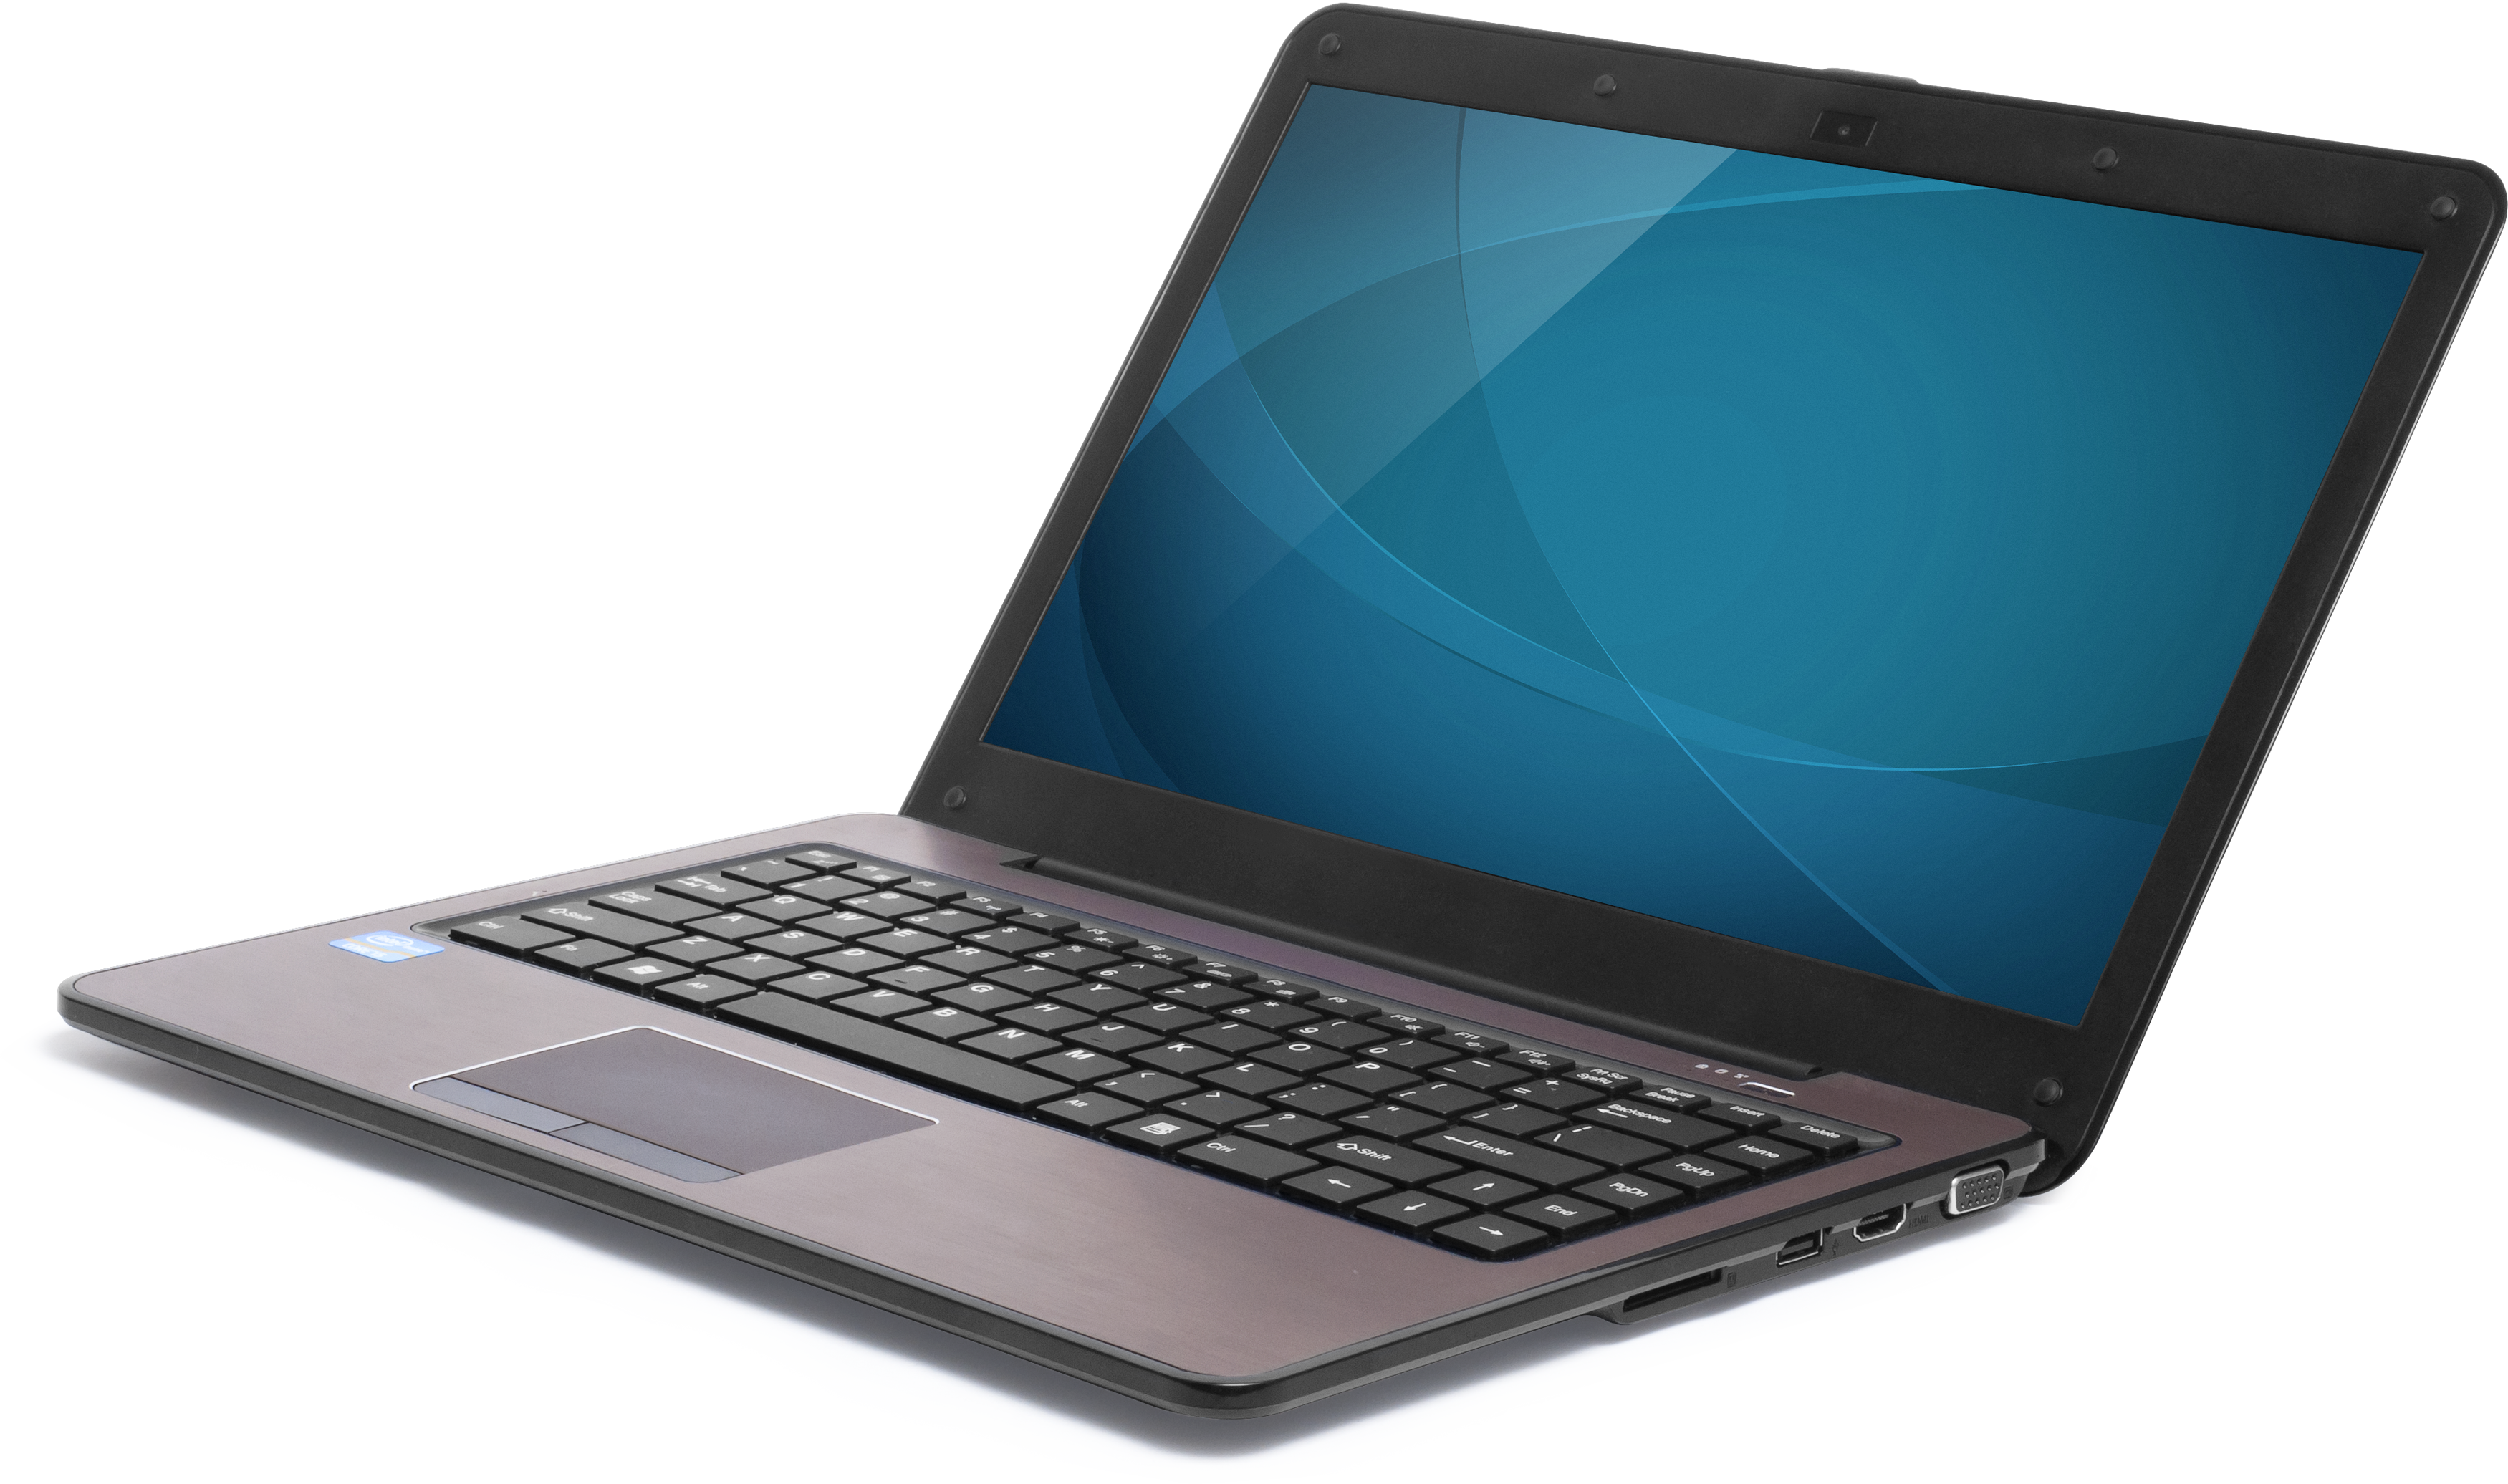 pc laptop png